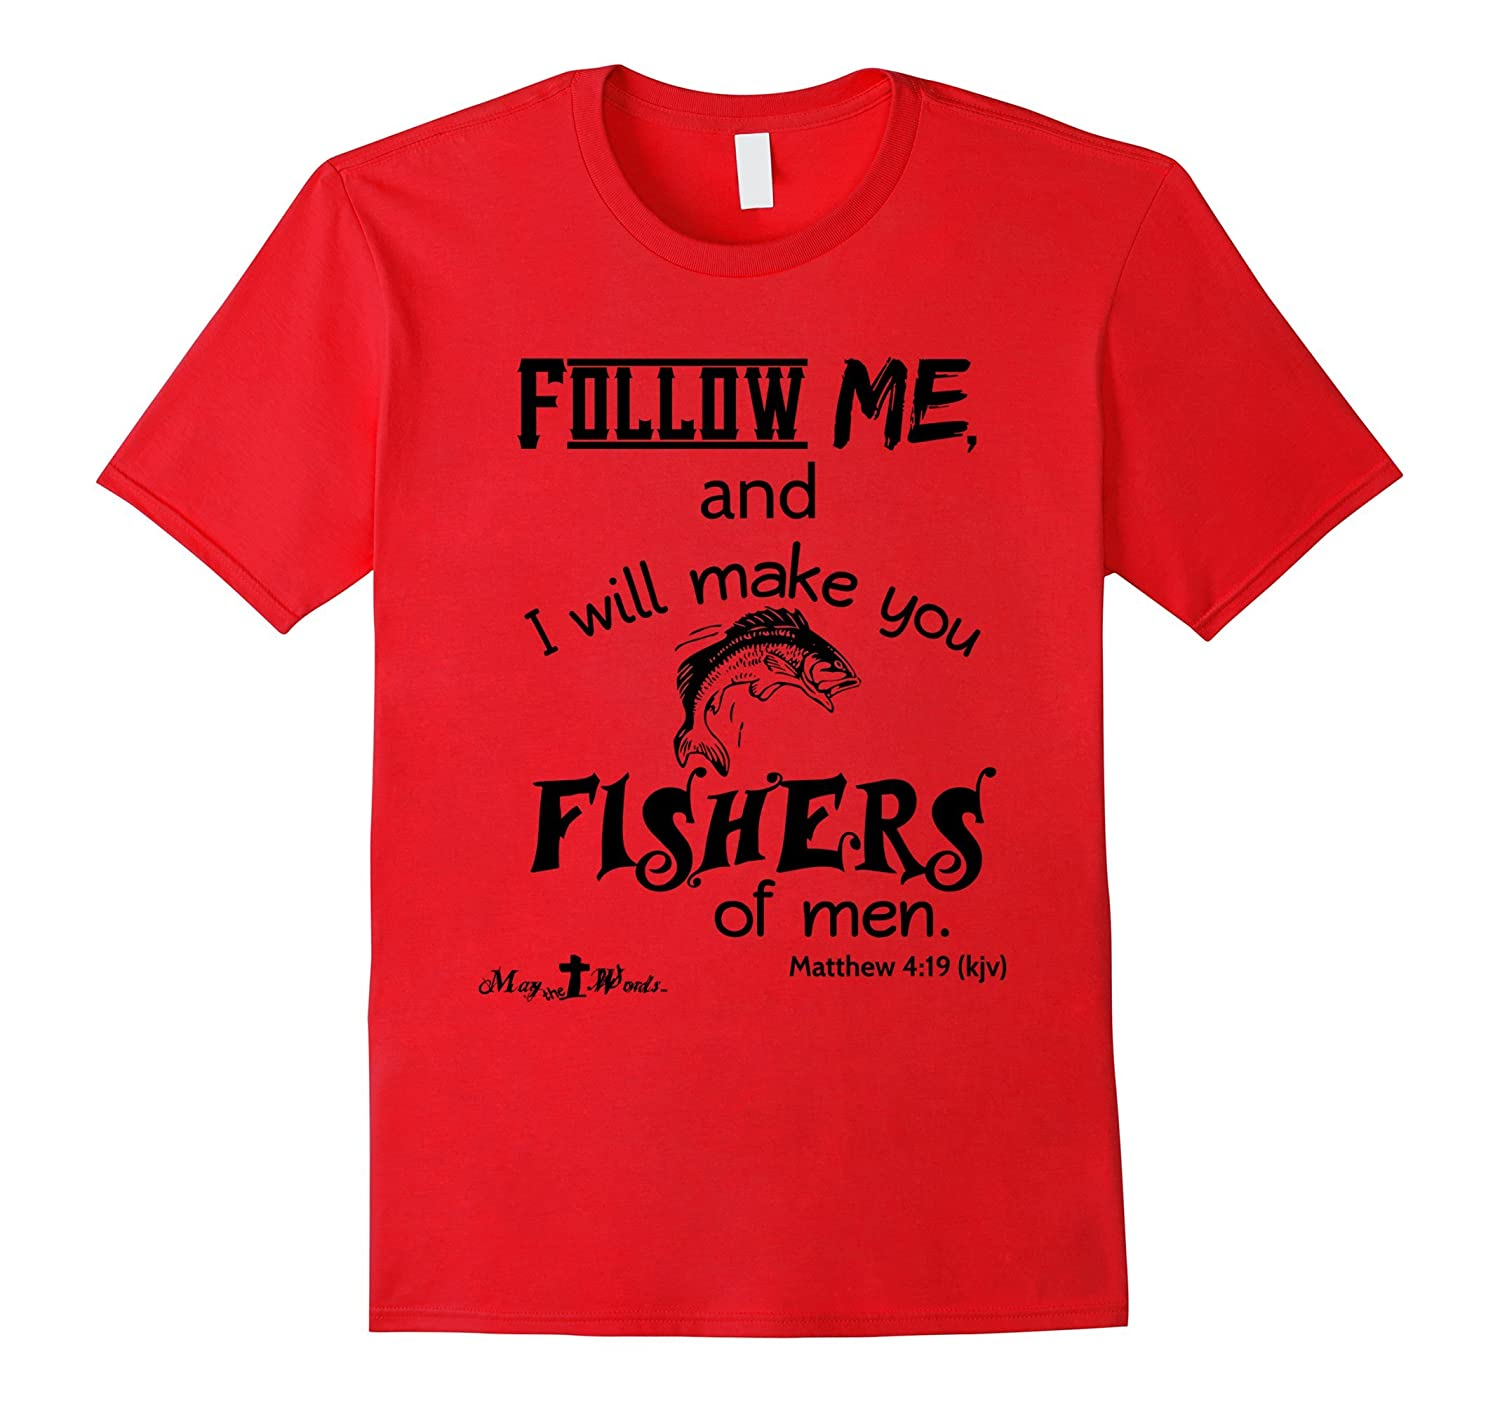 ...fishers of men Matthew 4:19 kjv tshirt-T-Shirt